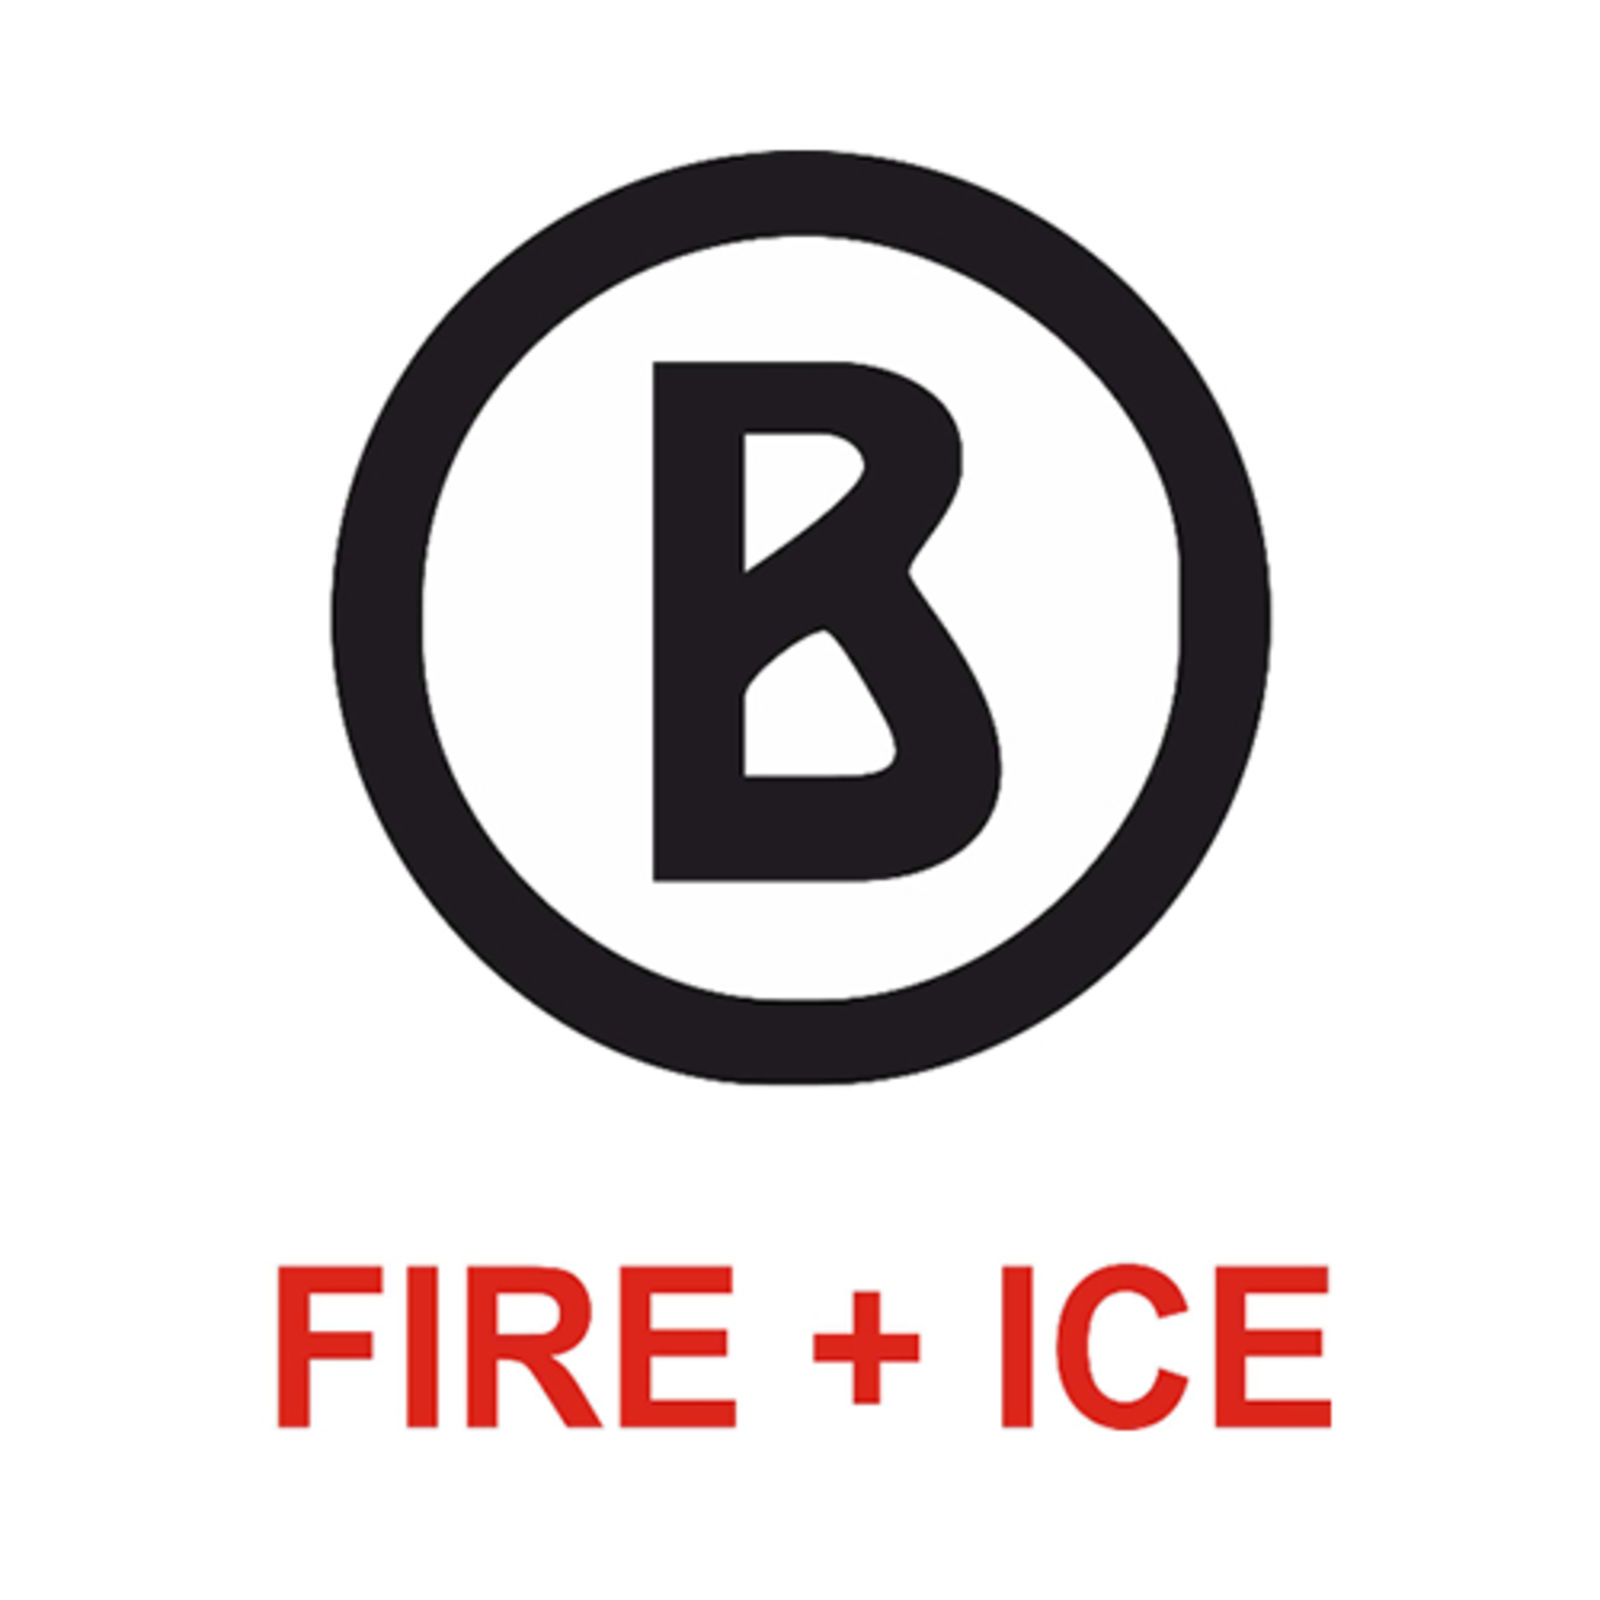 BOGNER Fire + Ice (Bild 1)